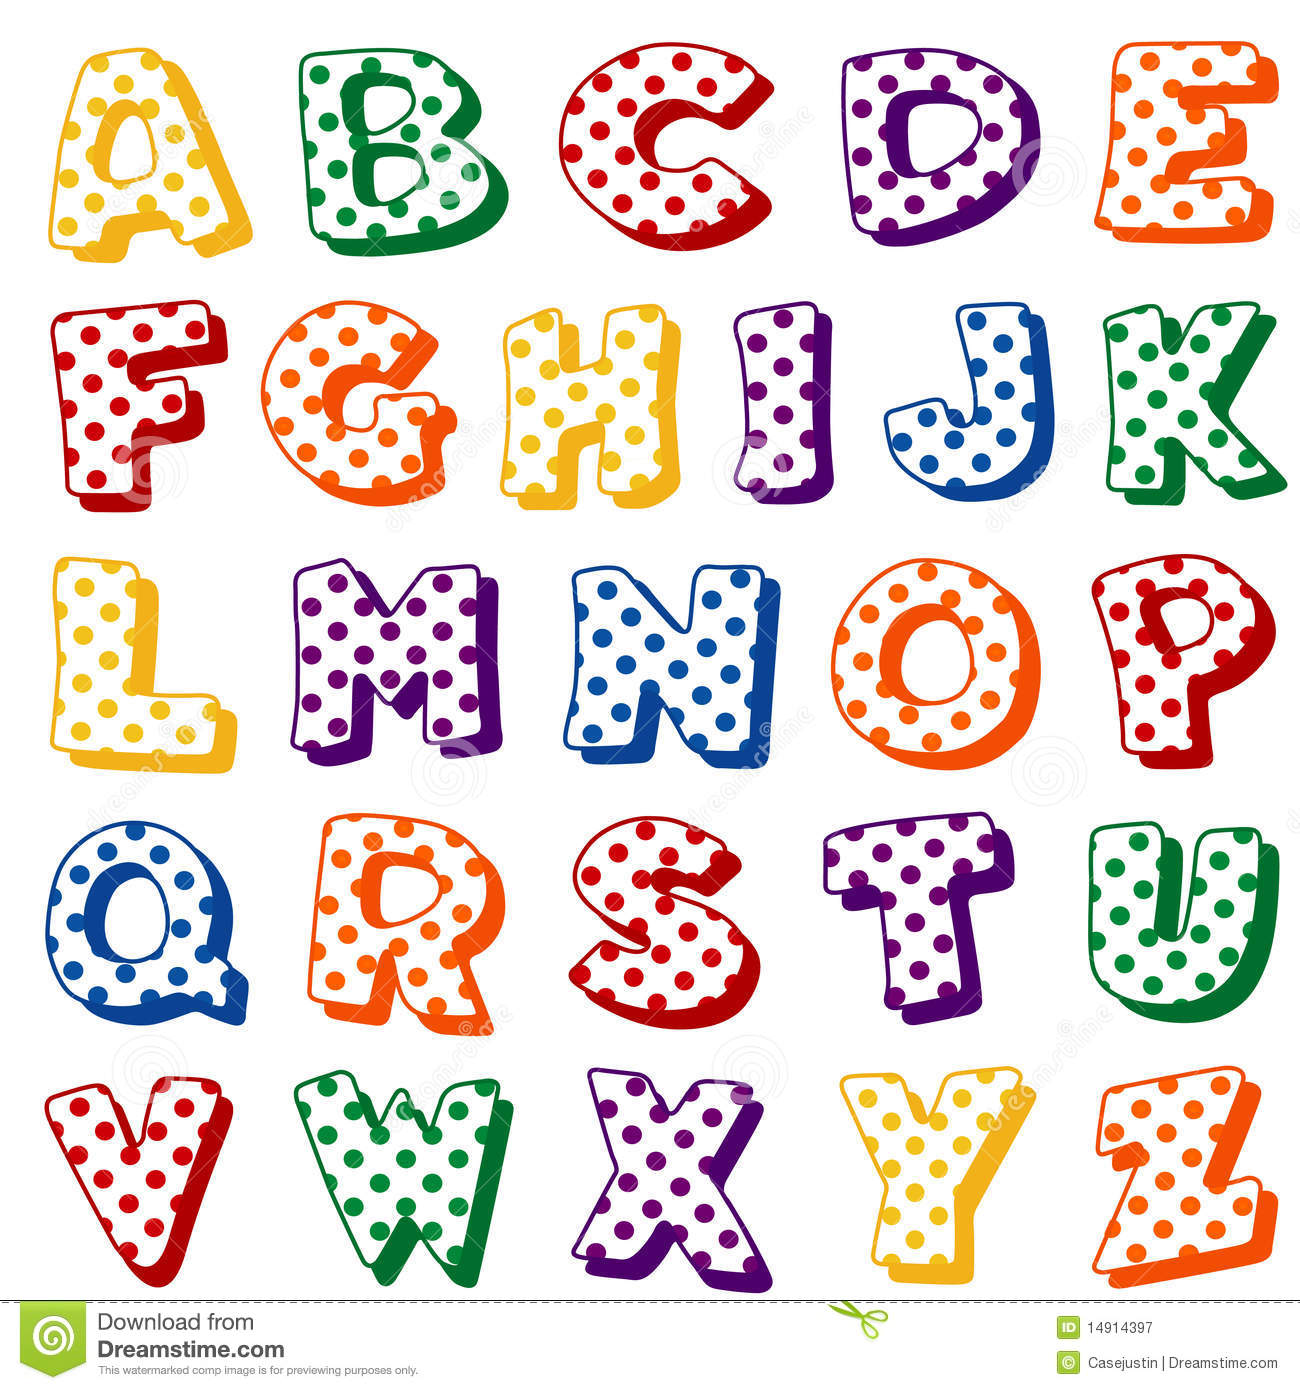 Bubble Letter Polka Dot U Colouring Pages page 3